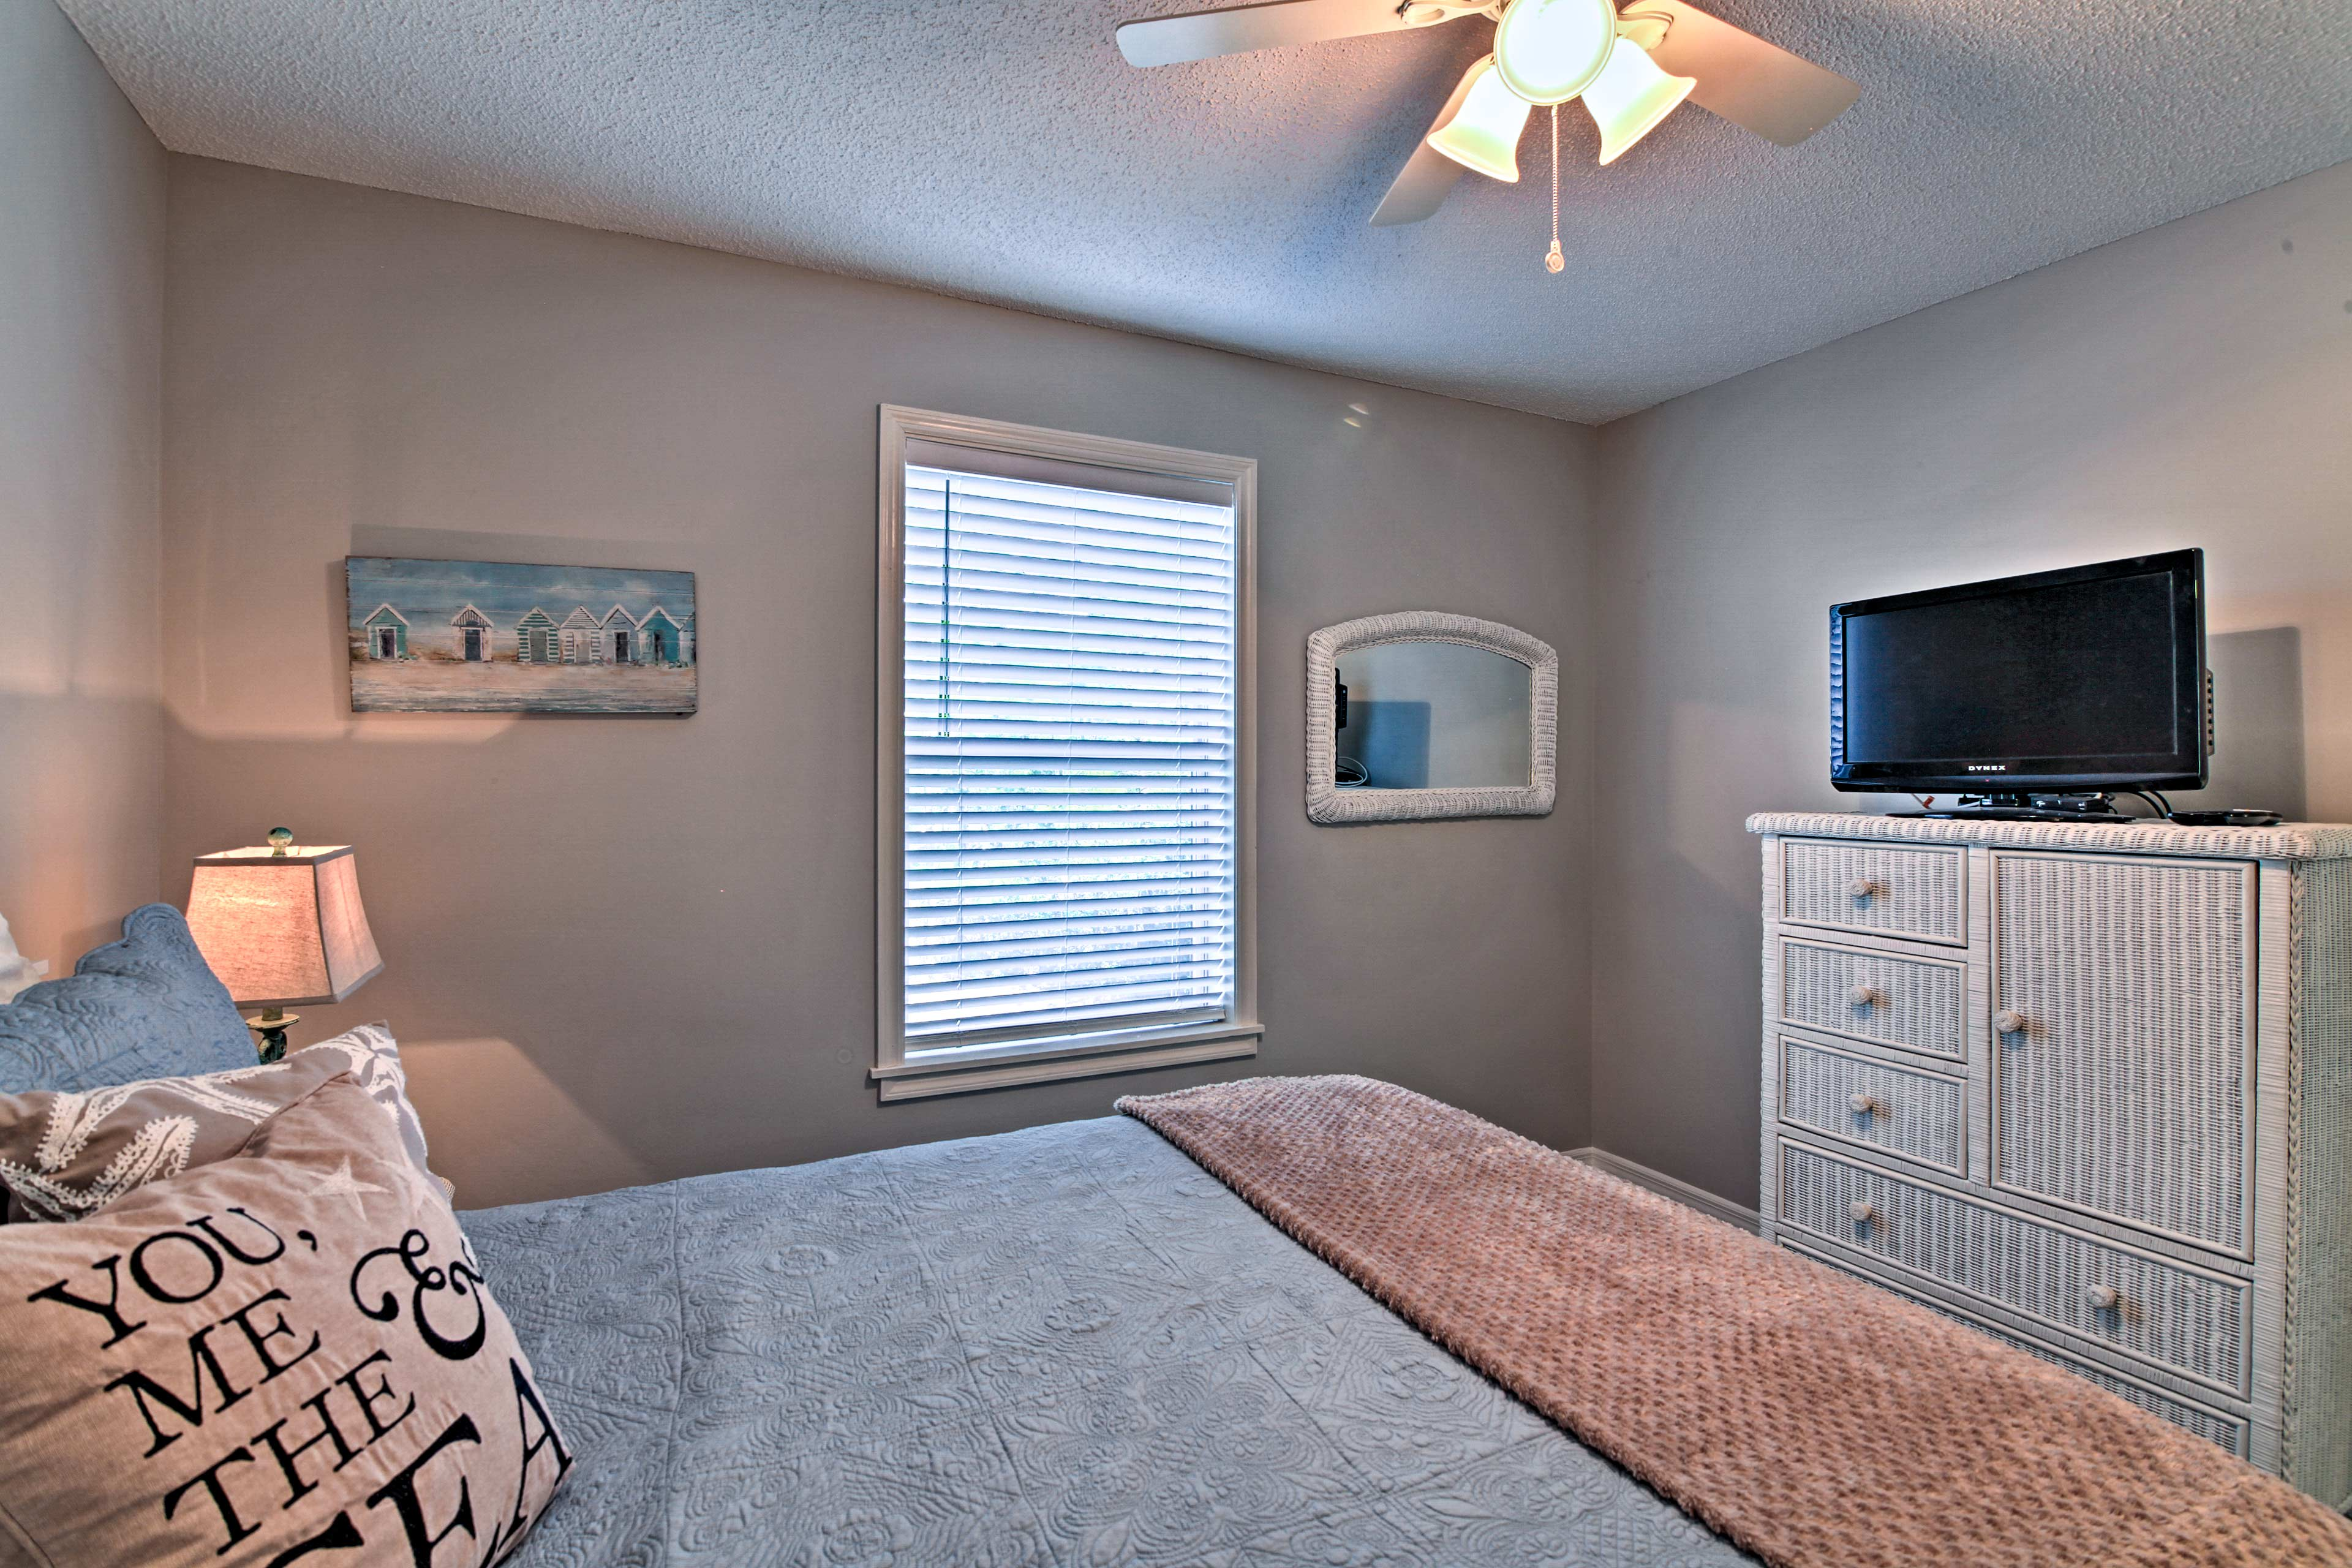 Dream of tomorrows adventures in this bedroom complete with a flat-screen TV.